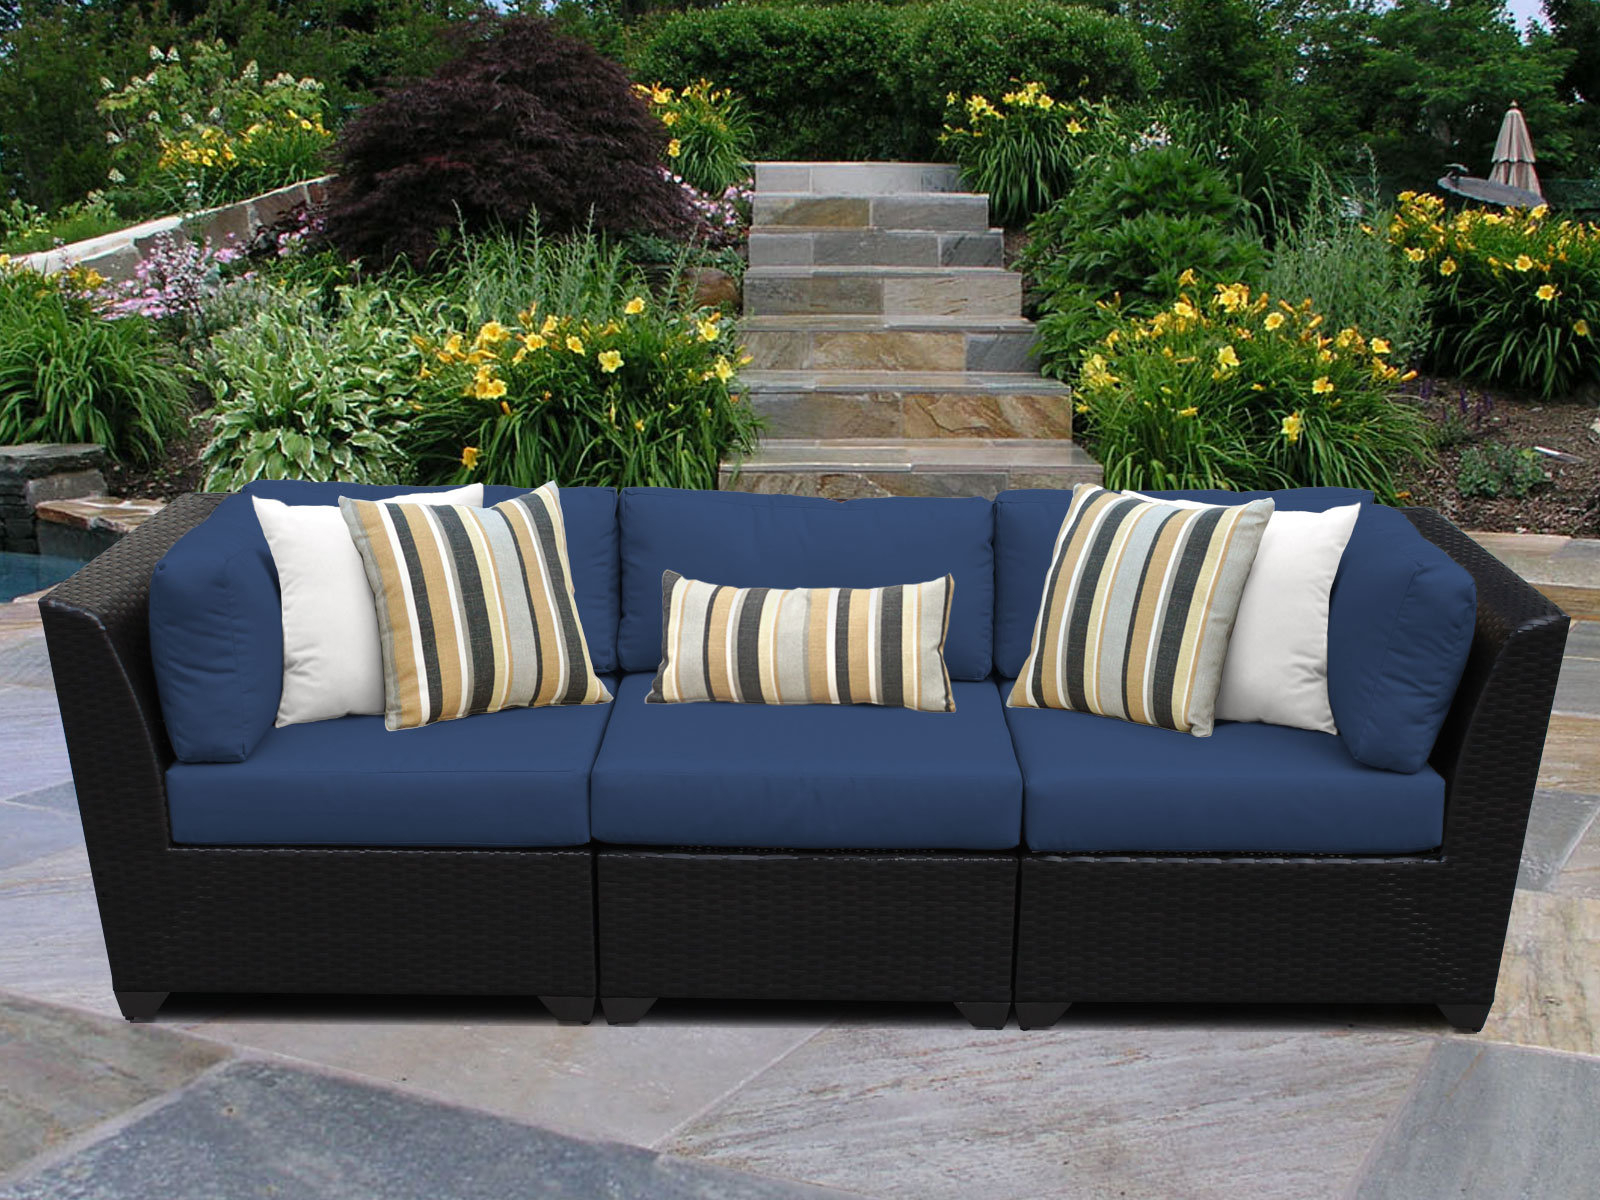 Most Recently Released Keiran Patio Sofas With Cushions With Regard To Camak Patio Sofa With Cushions (Gallery 16 of 20)